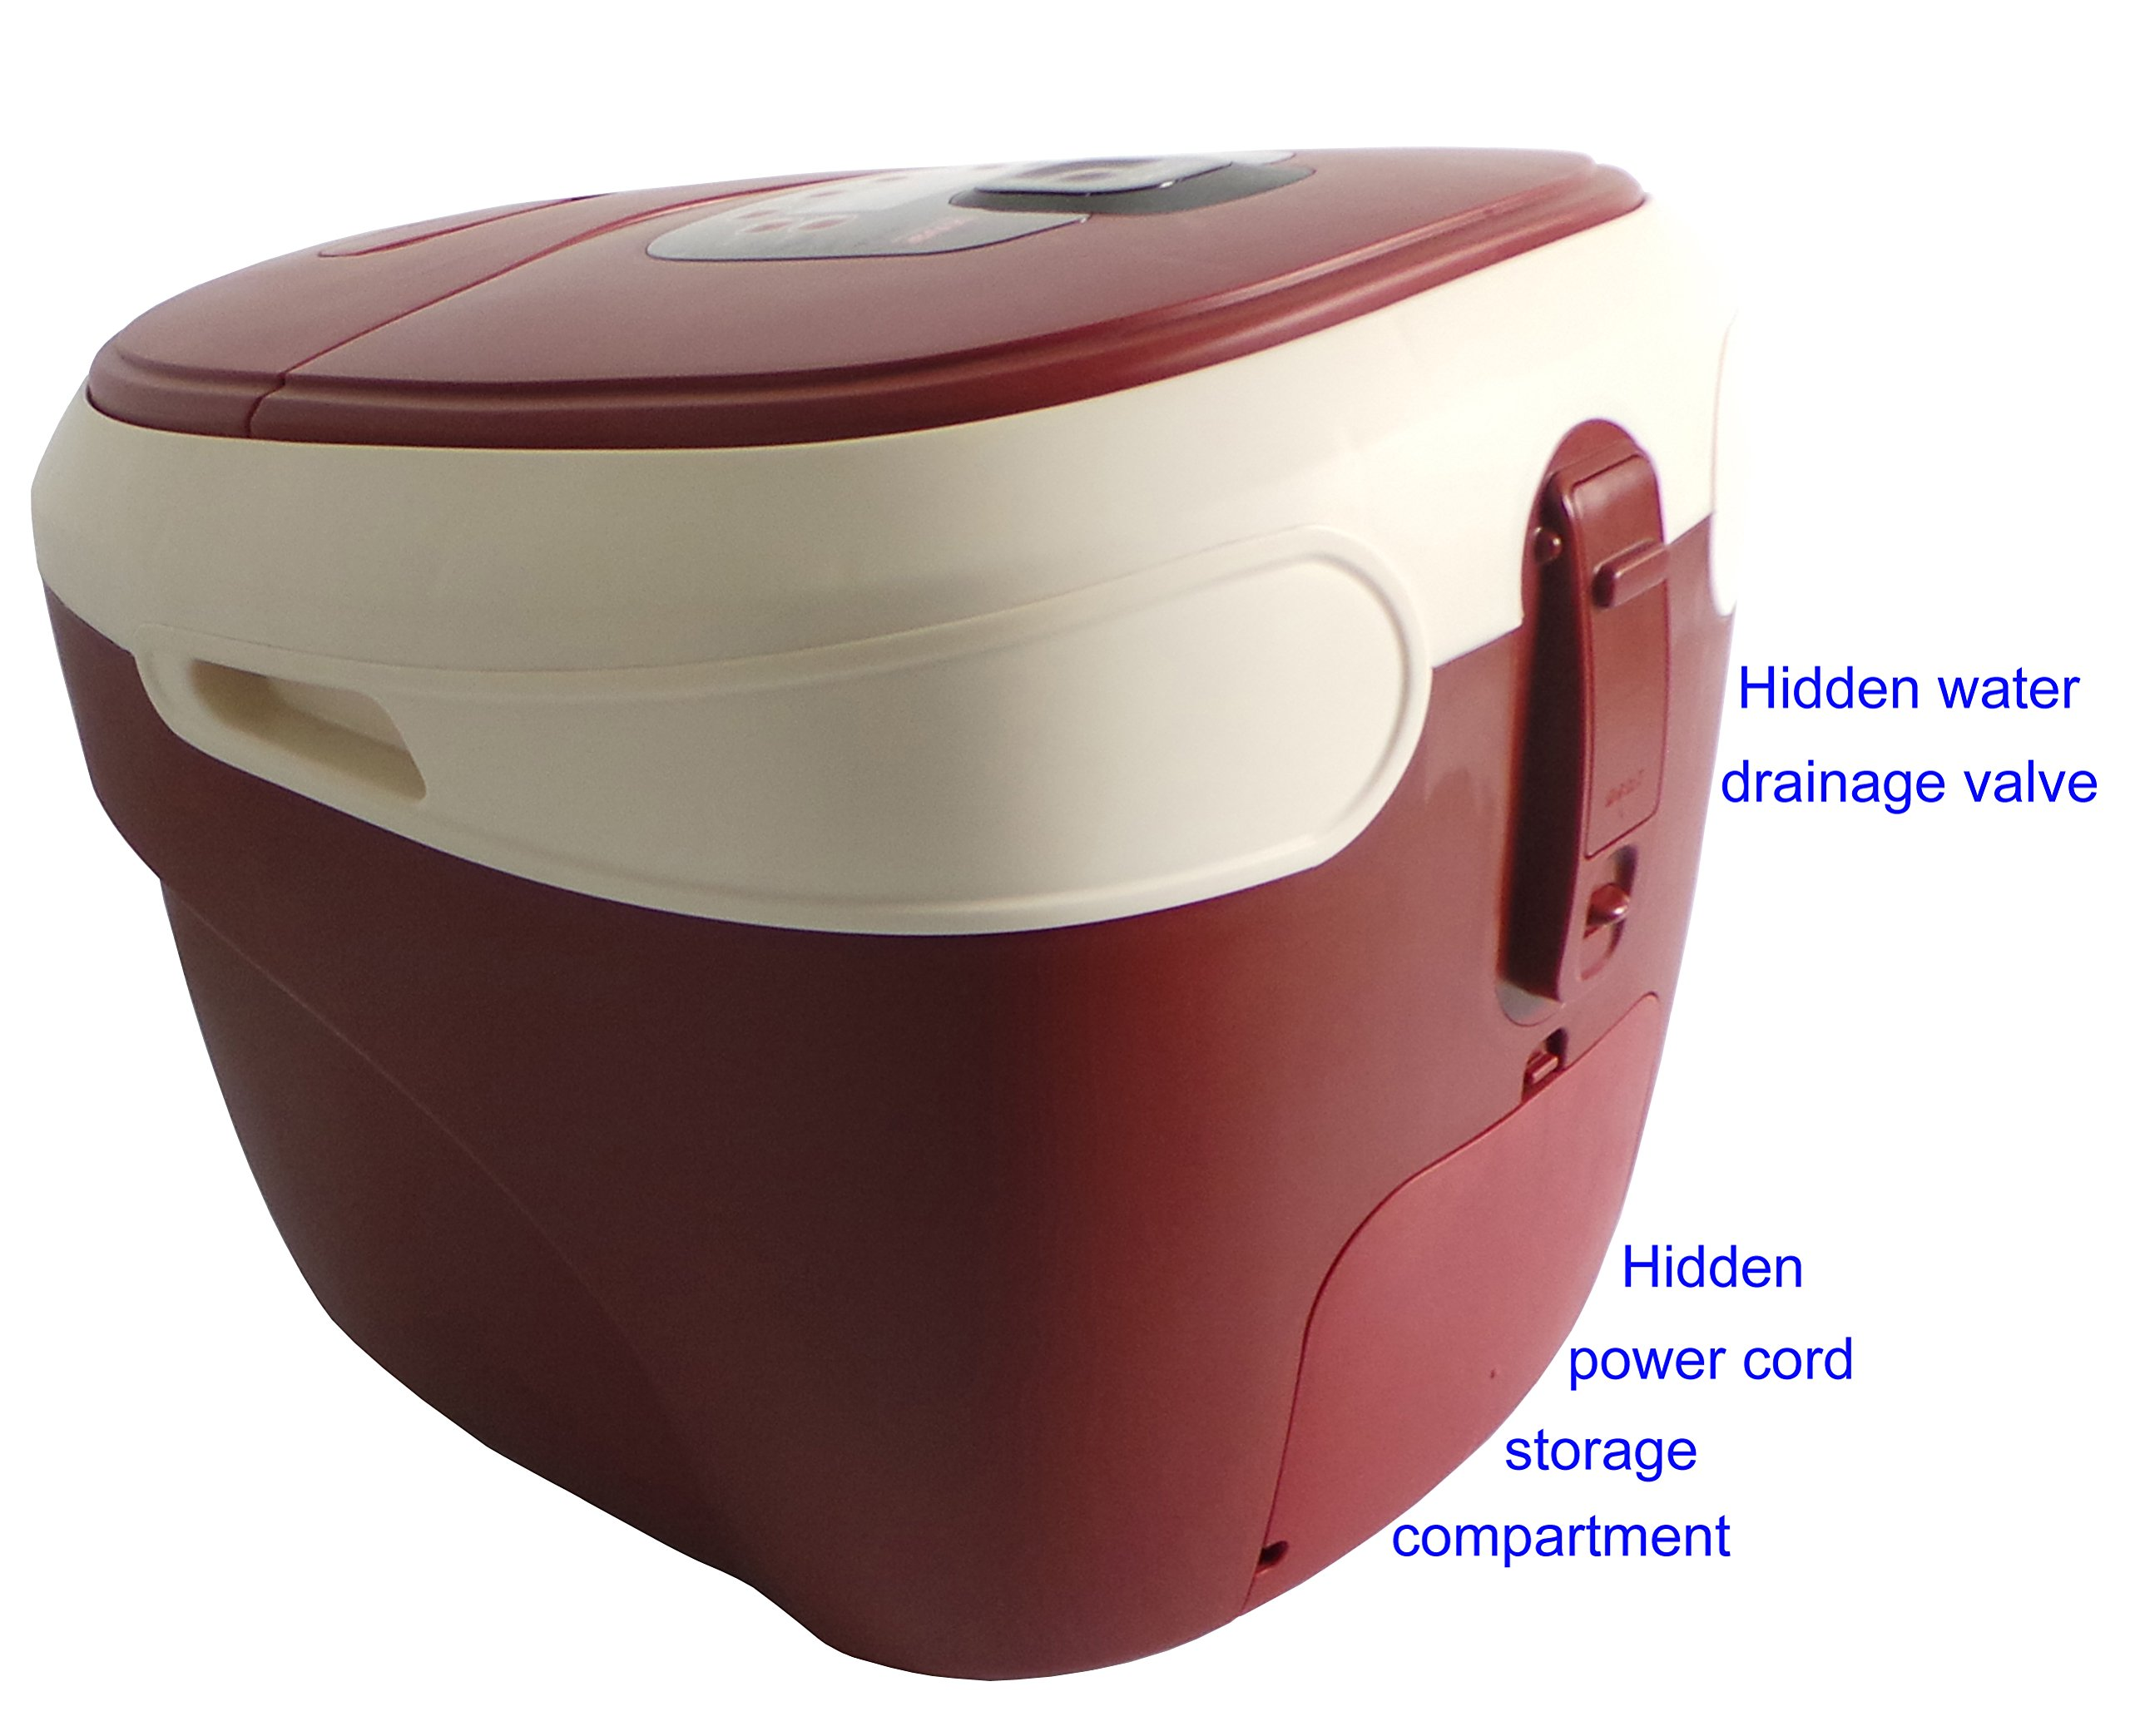 Carepeutic Ozone Waterfall Foot and Leg Spa Bath Massager, 20 Pound by Carepeutic (Image #2)